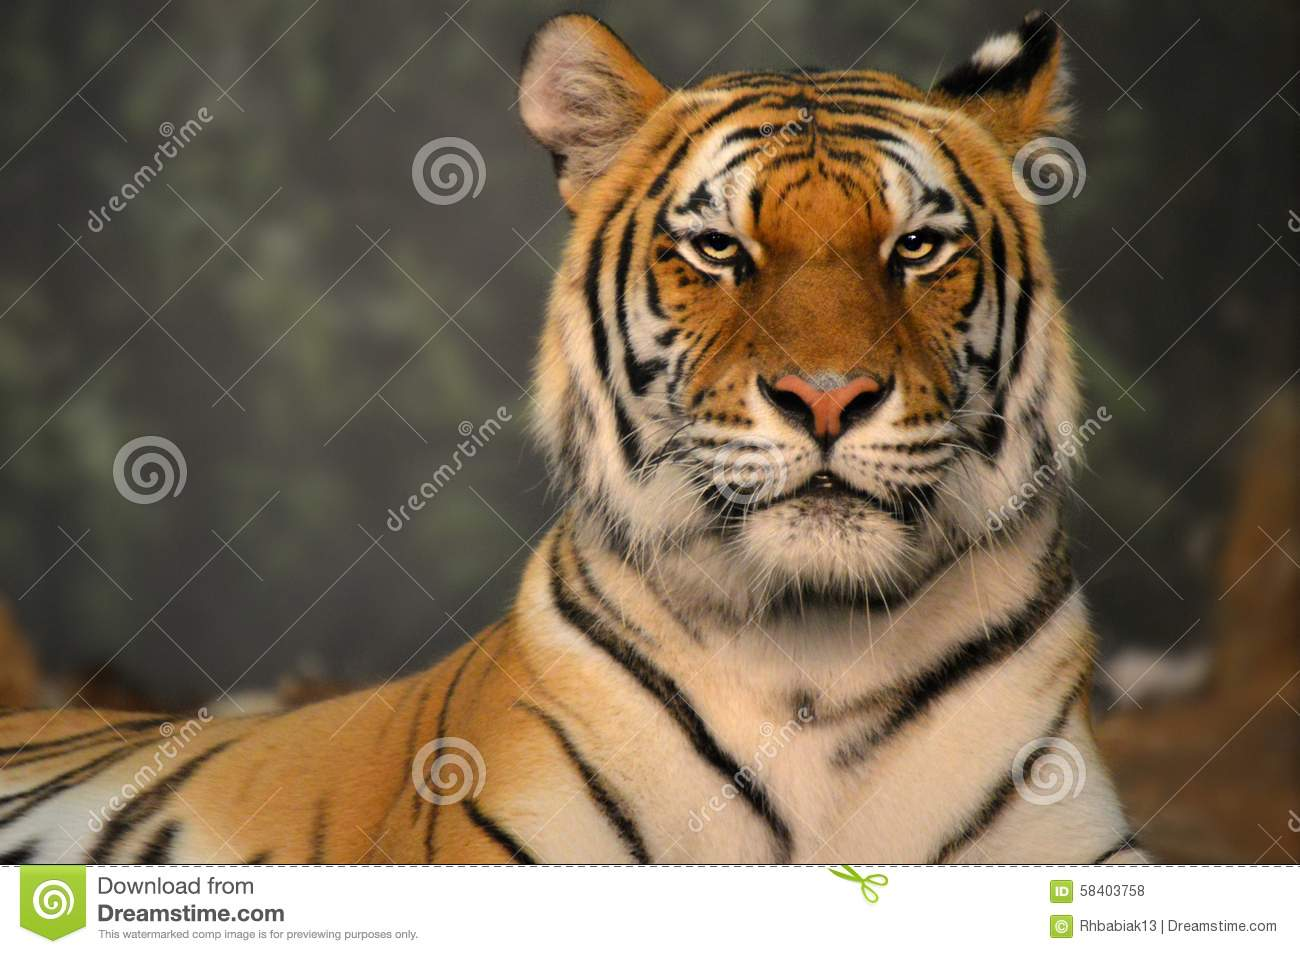 Download Tiger stock photo. Image of milwaukee, stare, mammal - 58403758